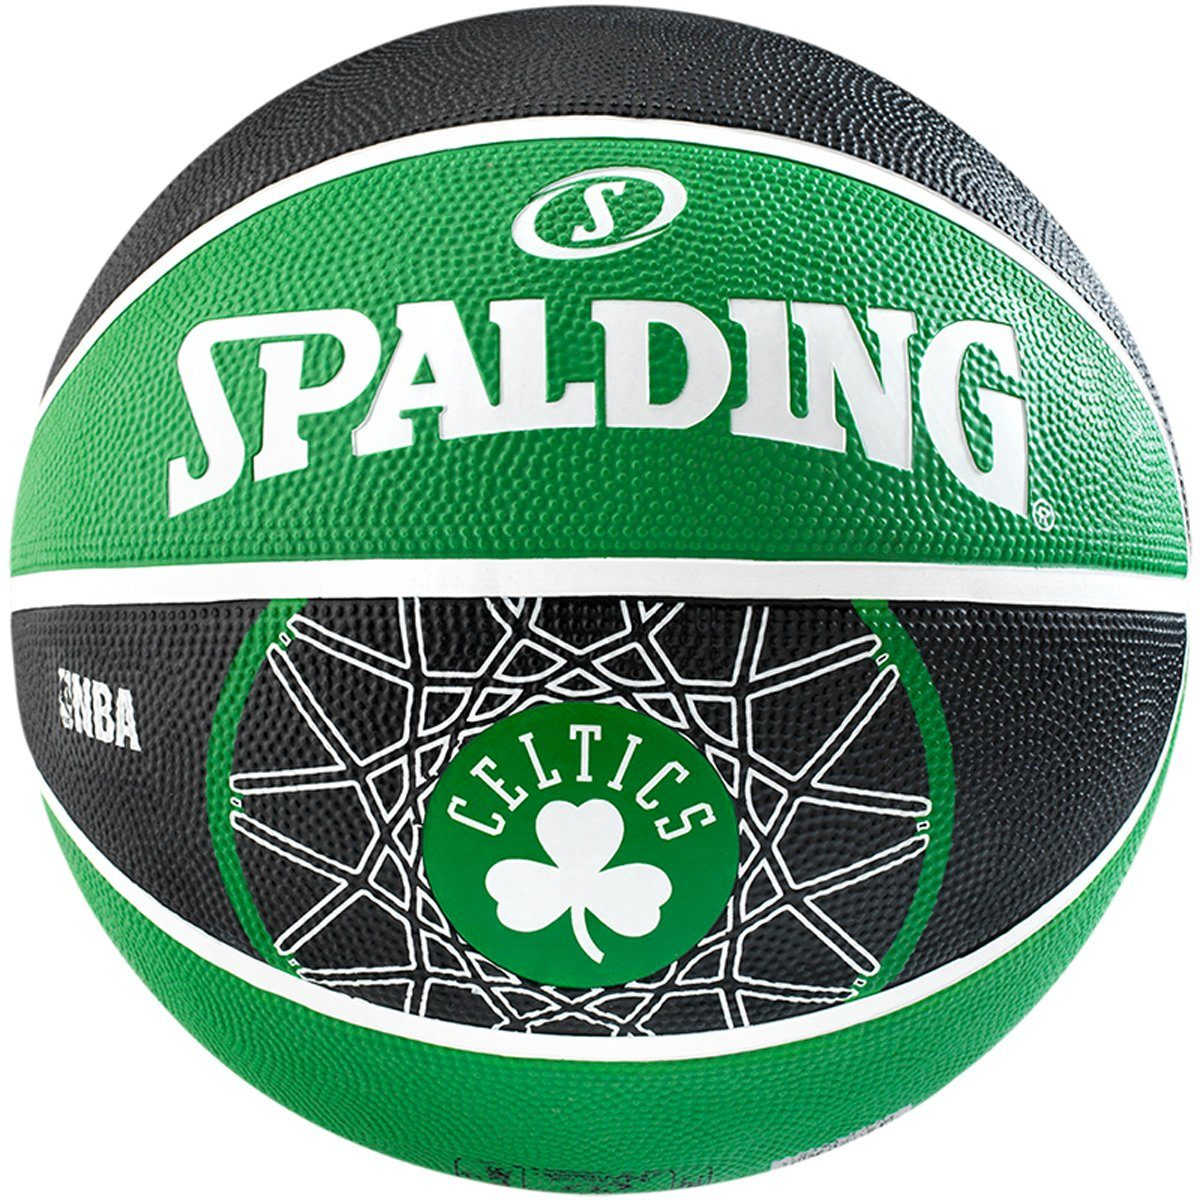 SPALDING Team Boston Celtics Basketball